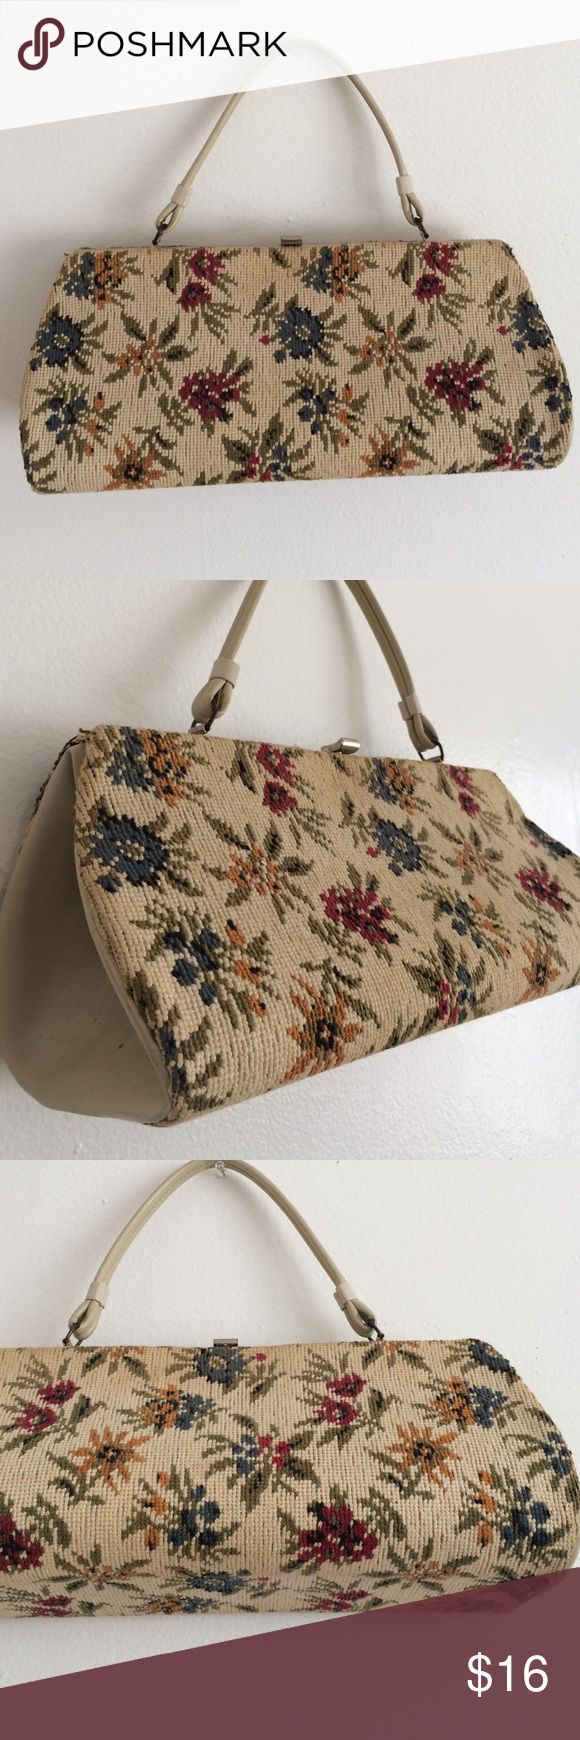 """Vintage 1960s textured carpet-bag style handbag Vintage 60's carpetbag style purse. Folk-style floral, pvc material trim , handle & lining. Has some very minor cosmetic imperfections due to age,  still a great handbag , very cute! 14.5"""" long , 7"""" high, handle drop is 6"""" . Vintage Bags"""